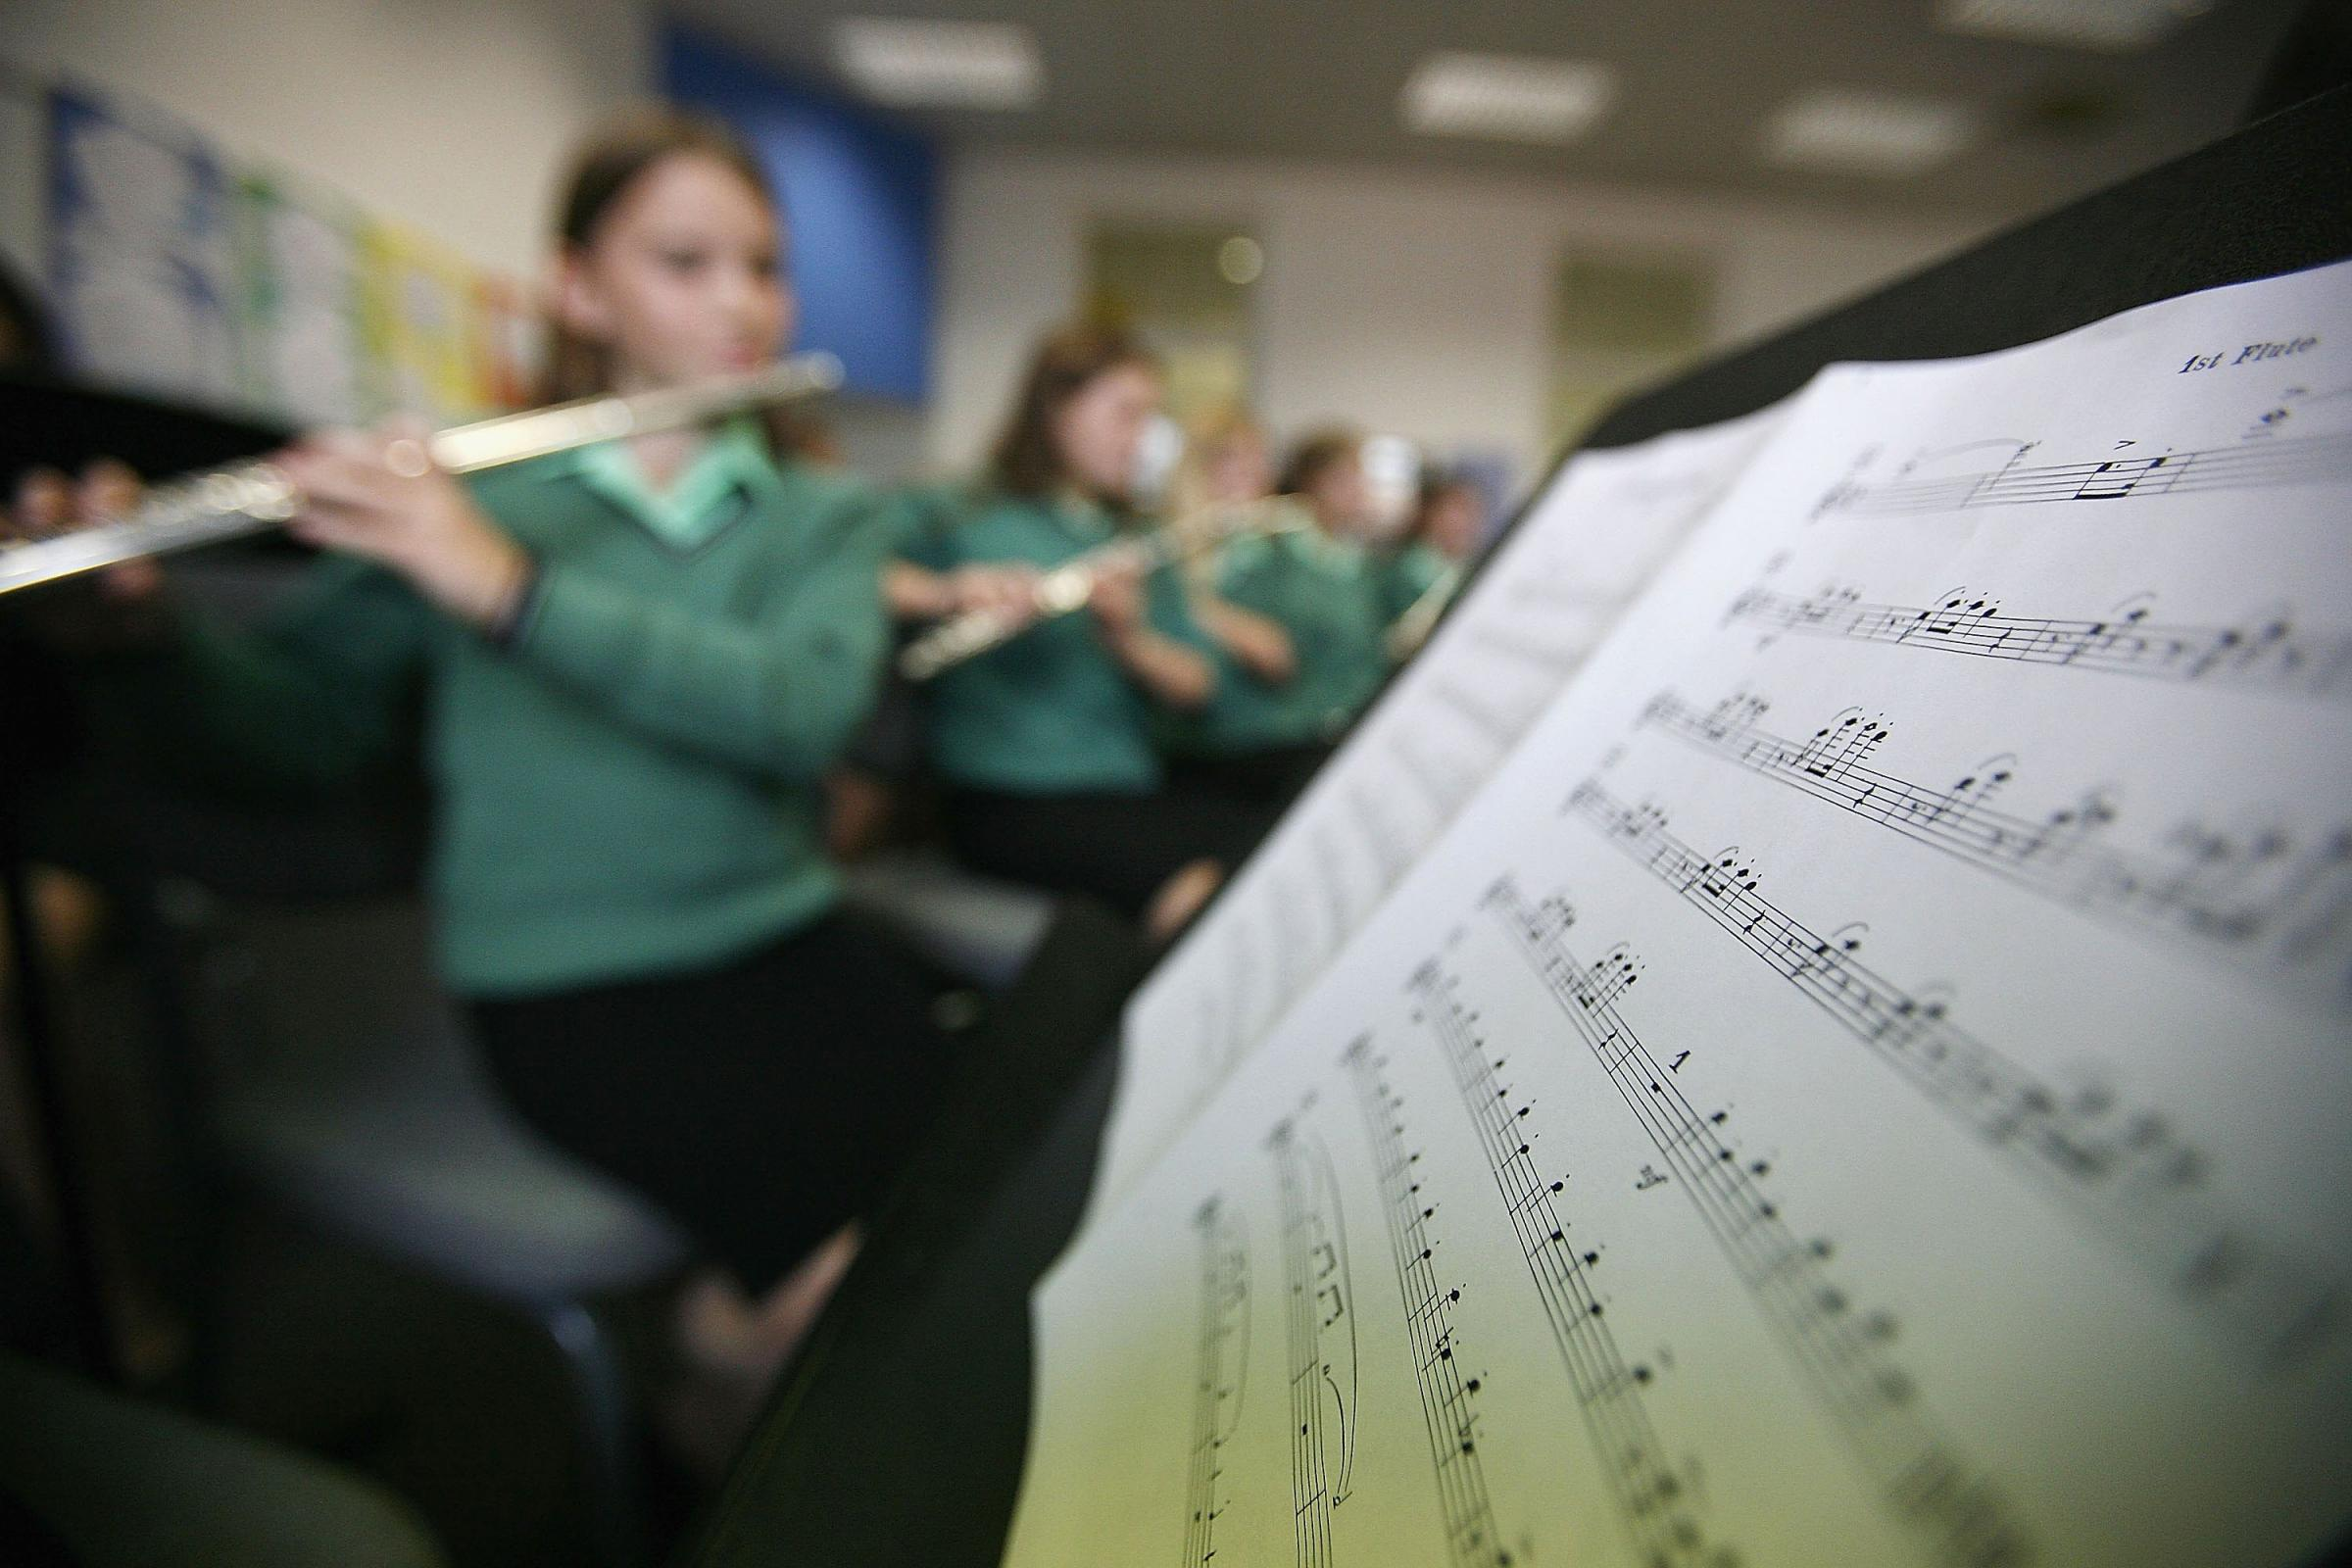 Councils are facing calls to scrap music tuition charges